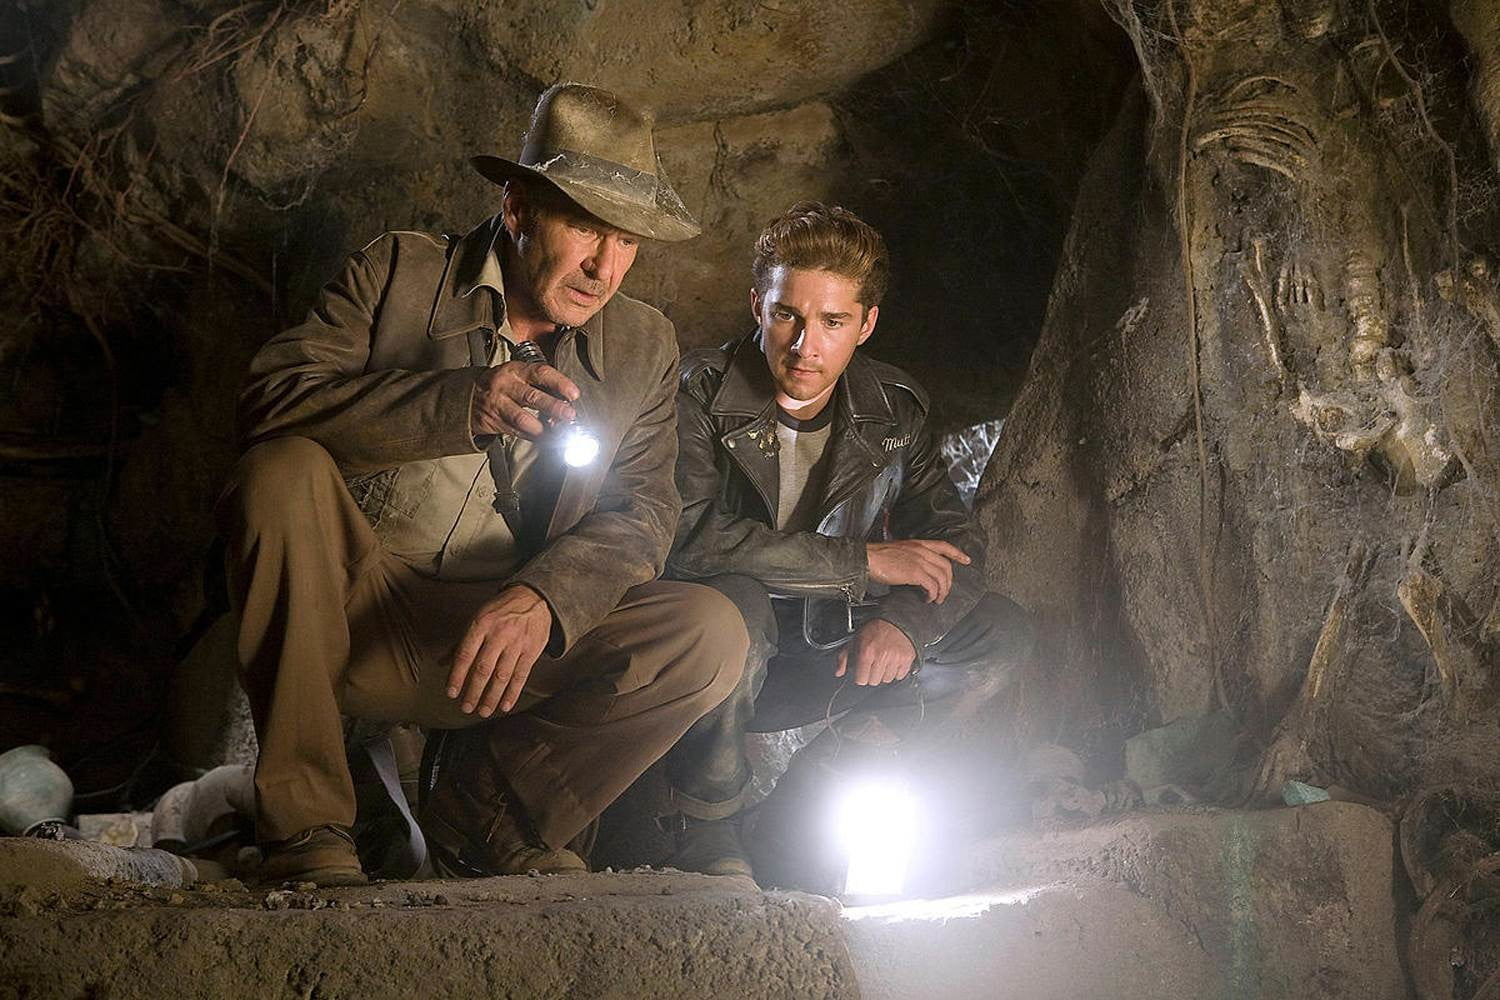 Indiana Jones 5: Everything We Know So Far About Indy's